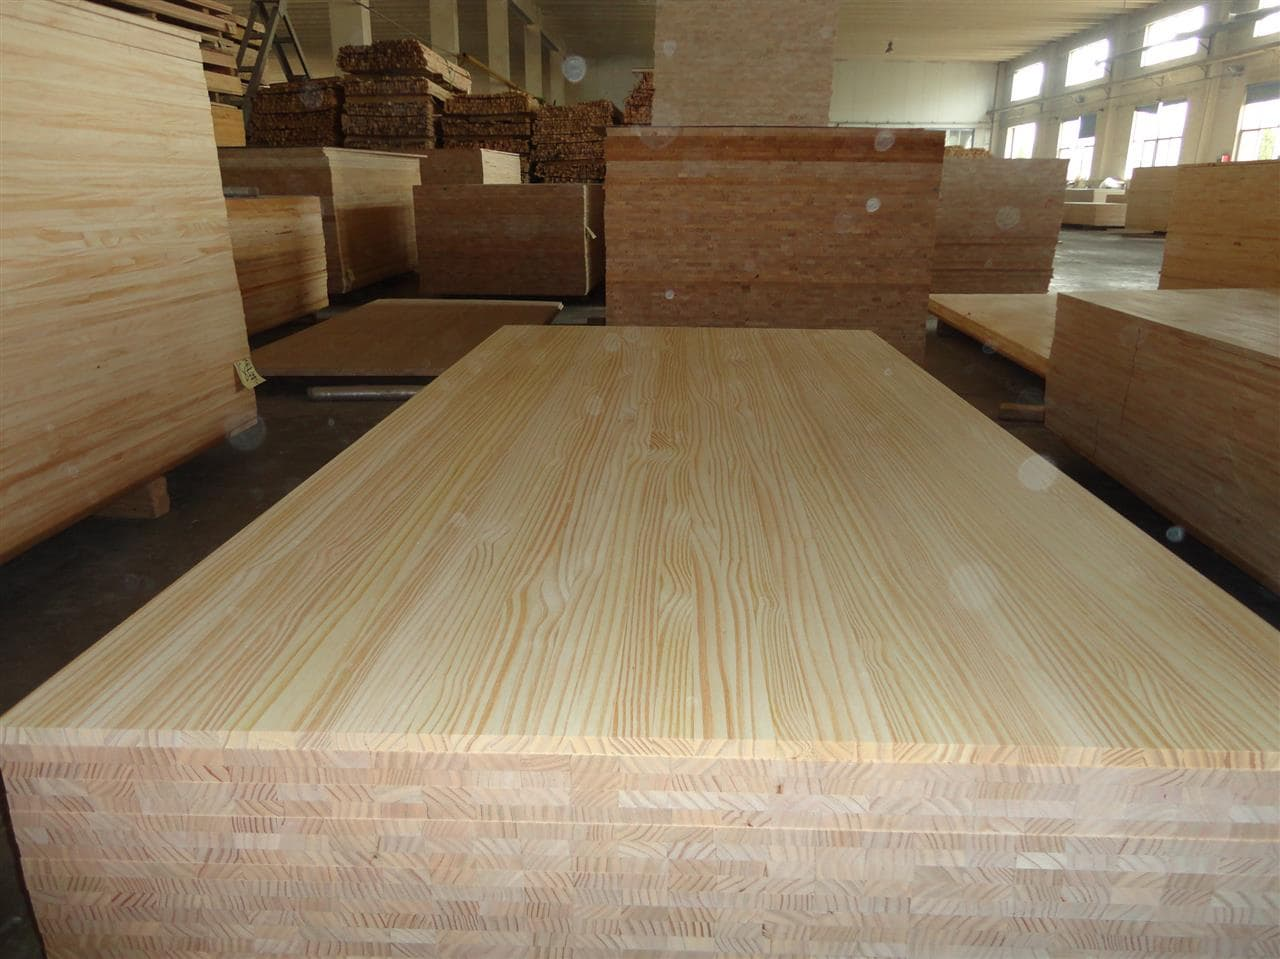 Pine wood sawn timber for construction furniture